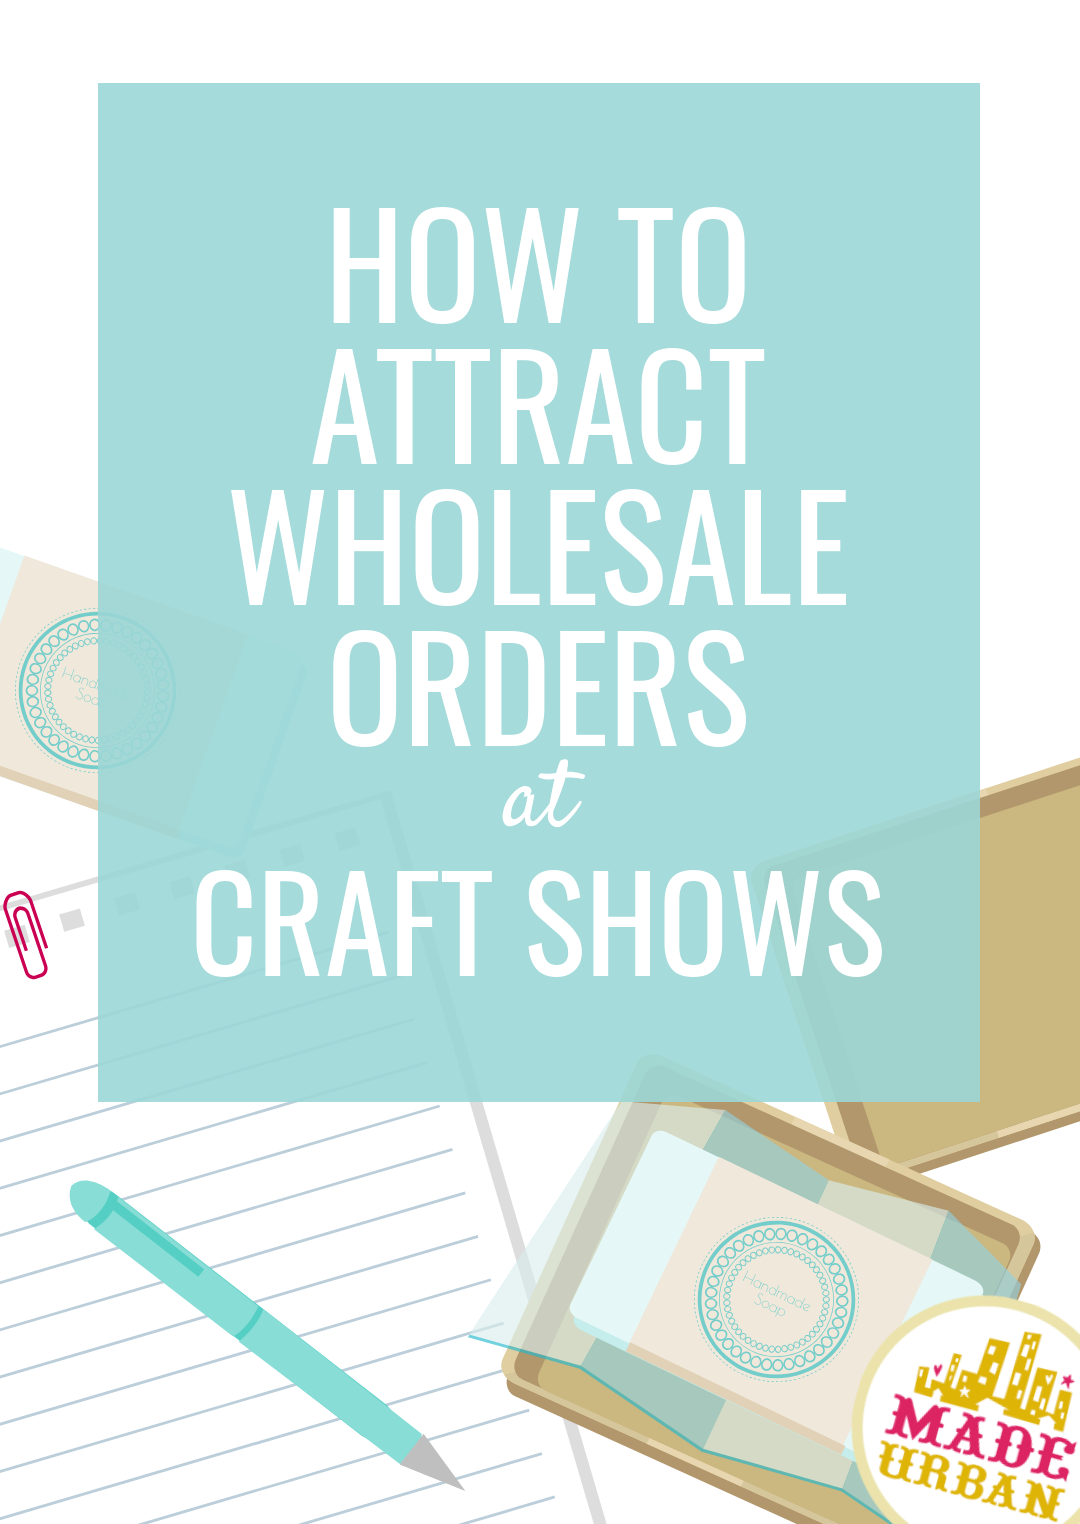 How to Get Wholesale Orders at Craft Shows